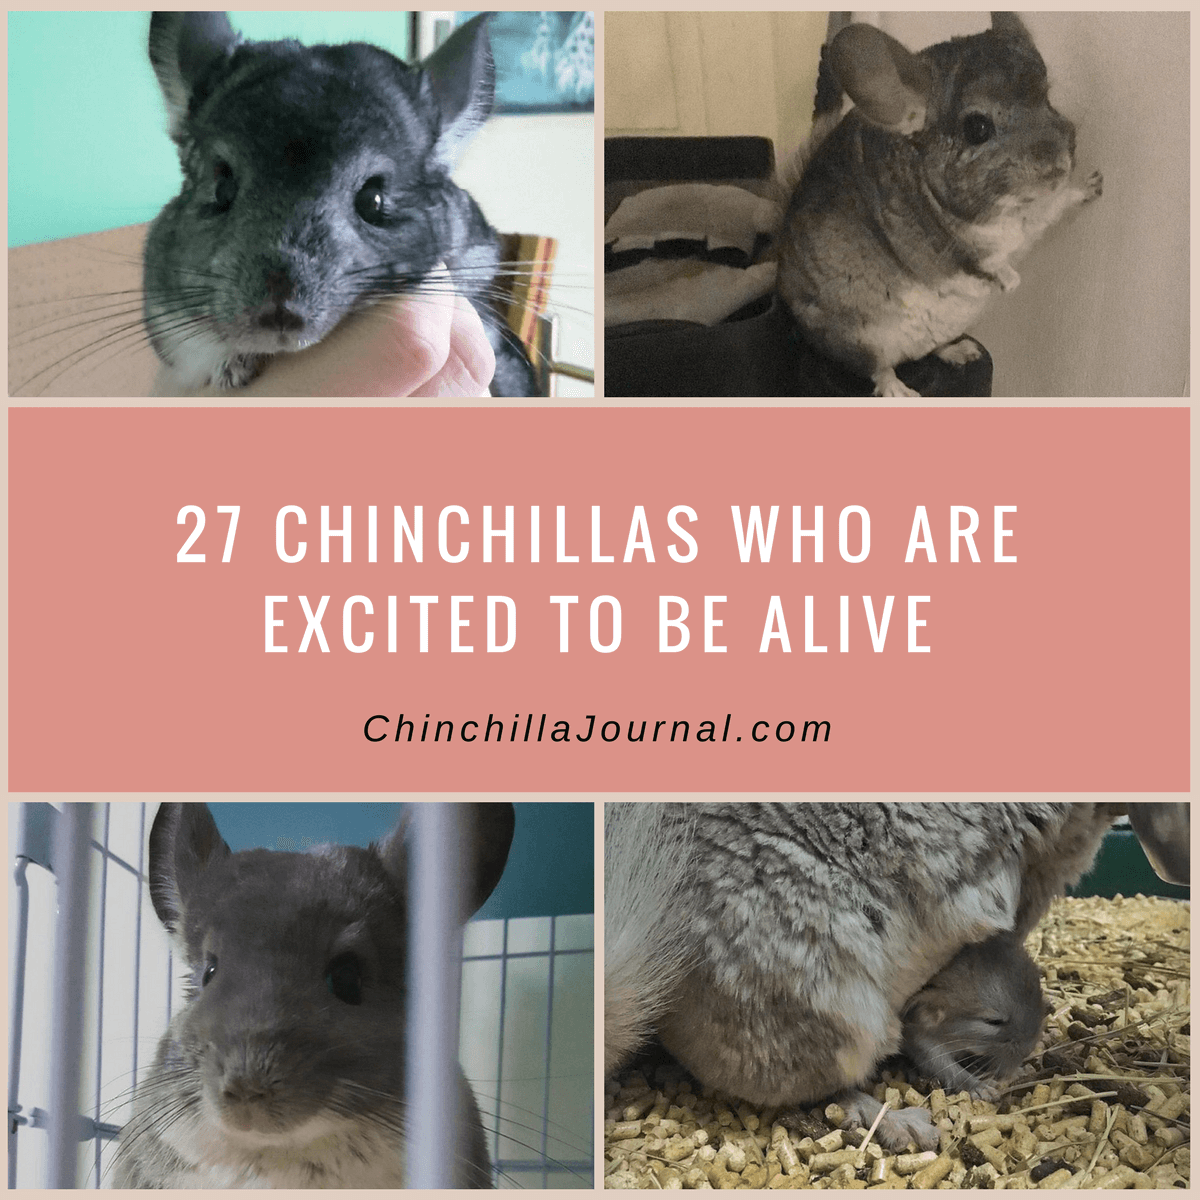 27 Chinchillas Who Are Excited To Be Alive